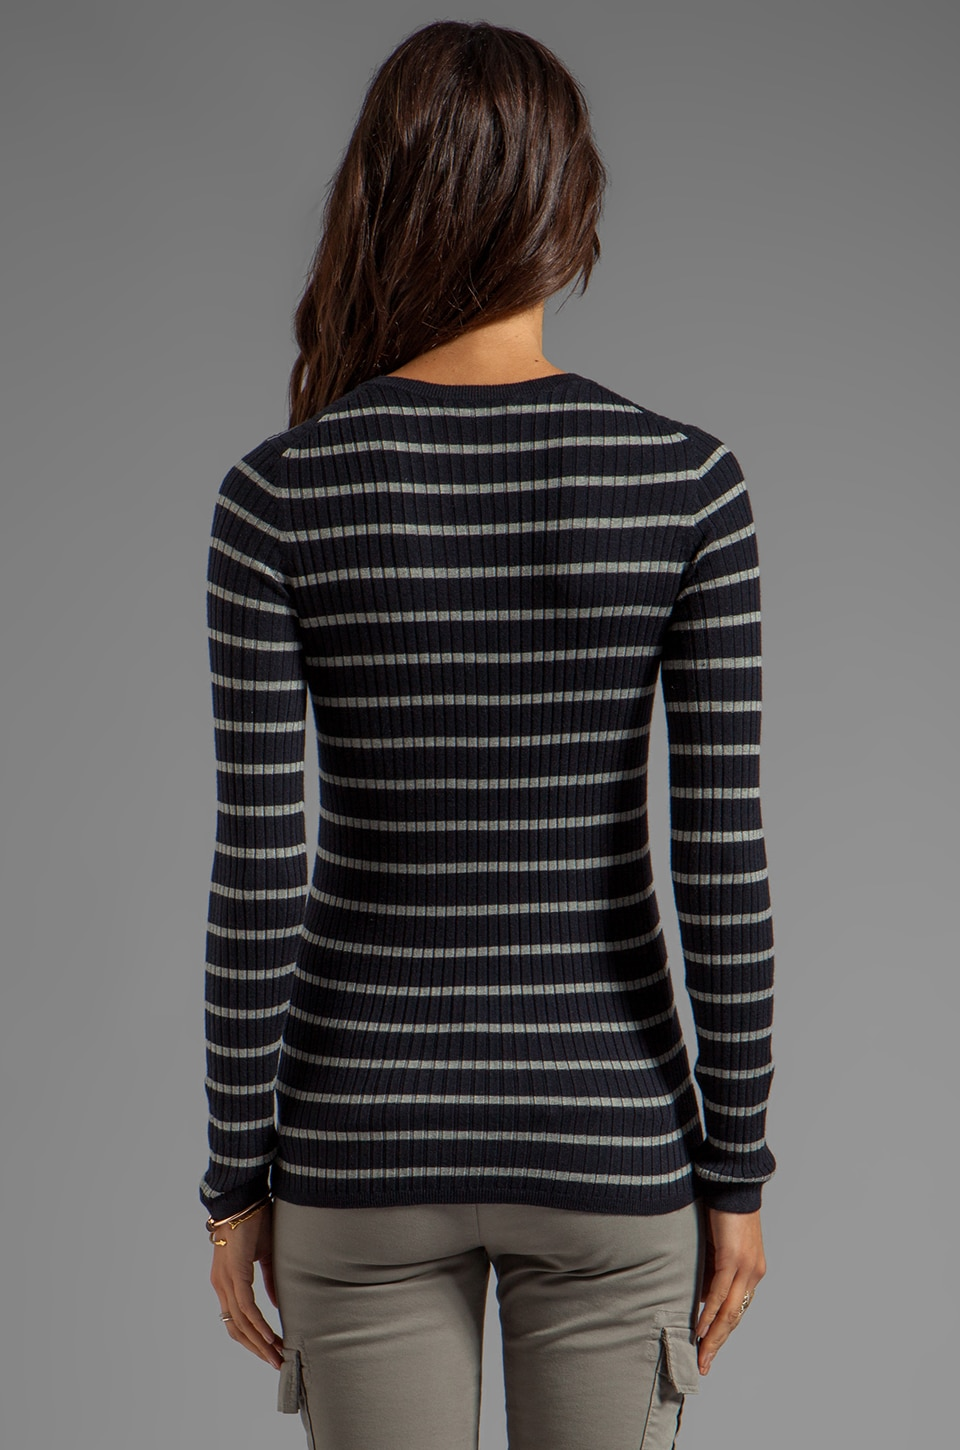 Vince Striped Long Sleeve Crew in Coastal/Heather Platinum